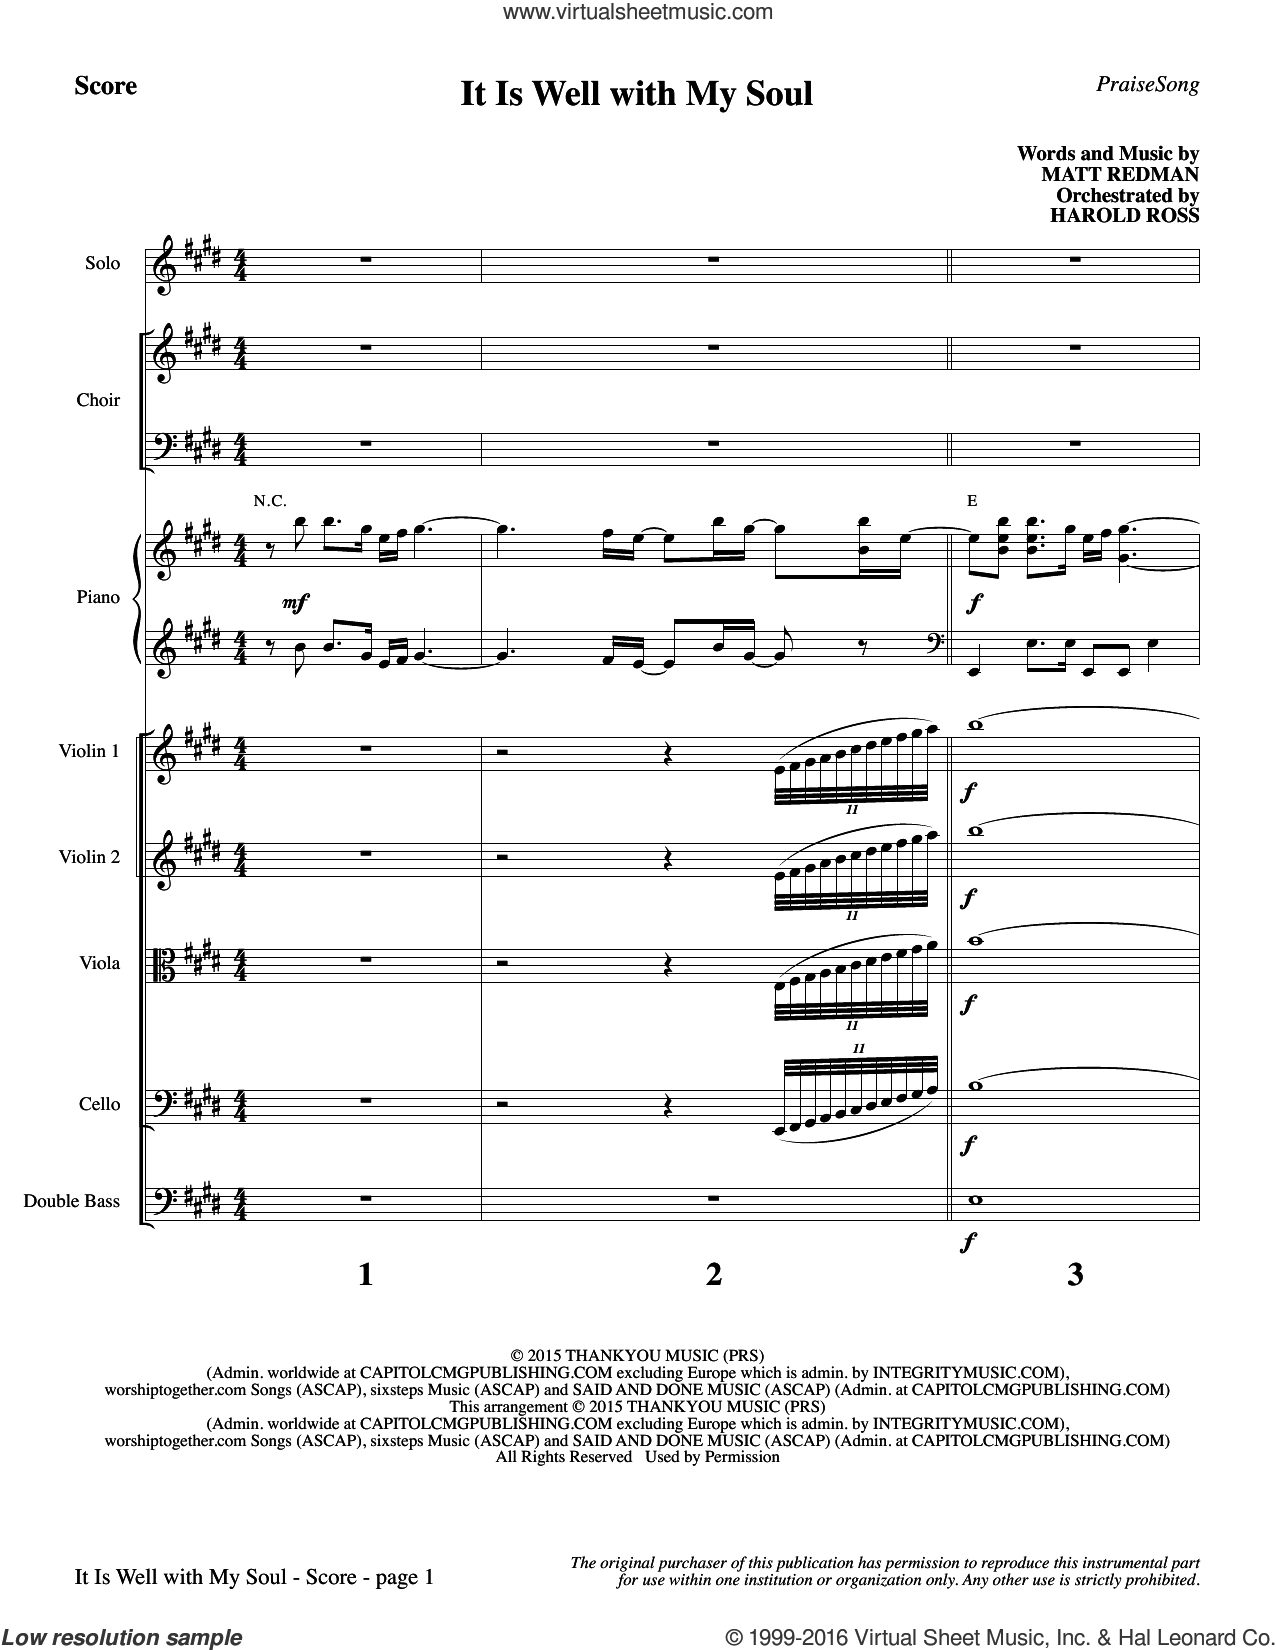 It Is Well with My Soul sheet music for orchestra/band (full score) by Matt Redman, Harold Ross, Horatio G. Spafford, Philip P. Bliss and Beth Redman. Score Image Preview.